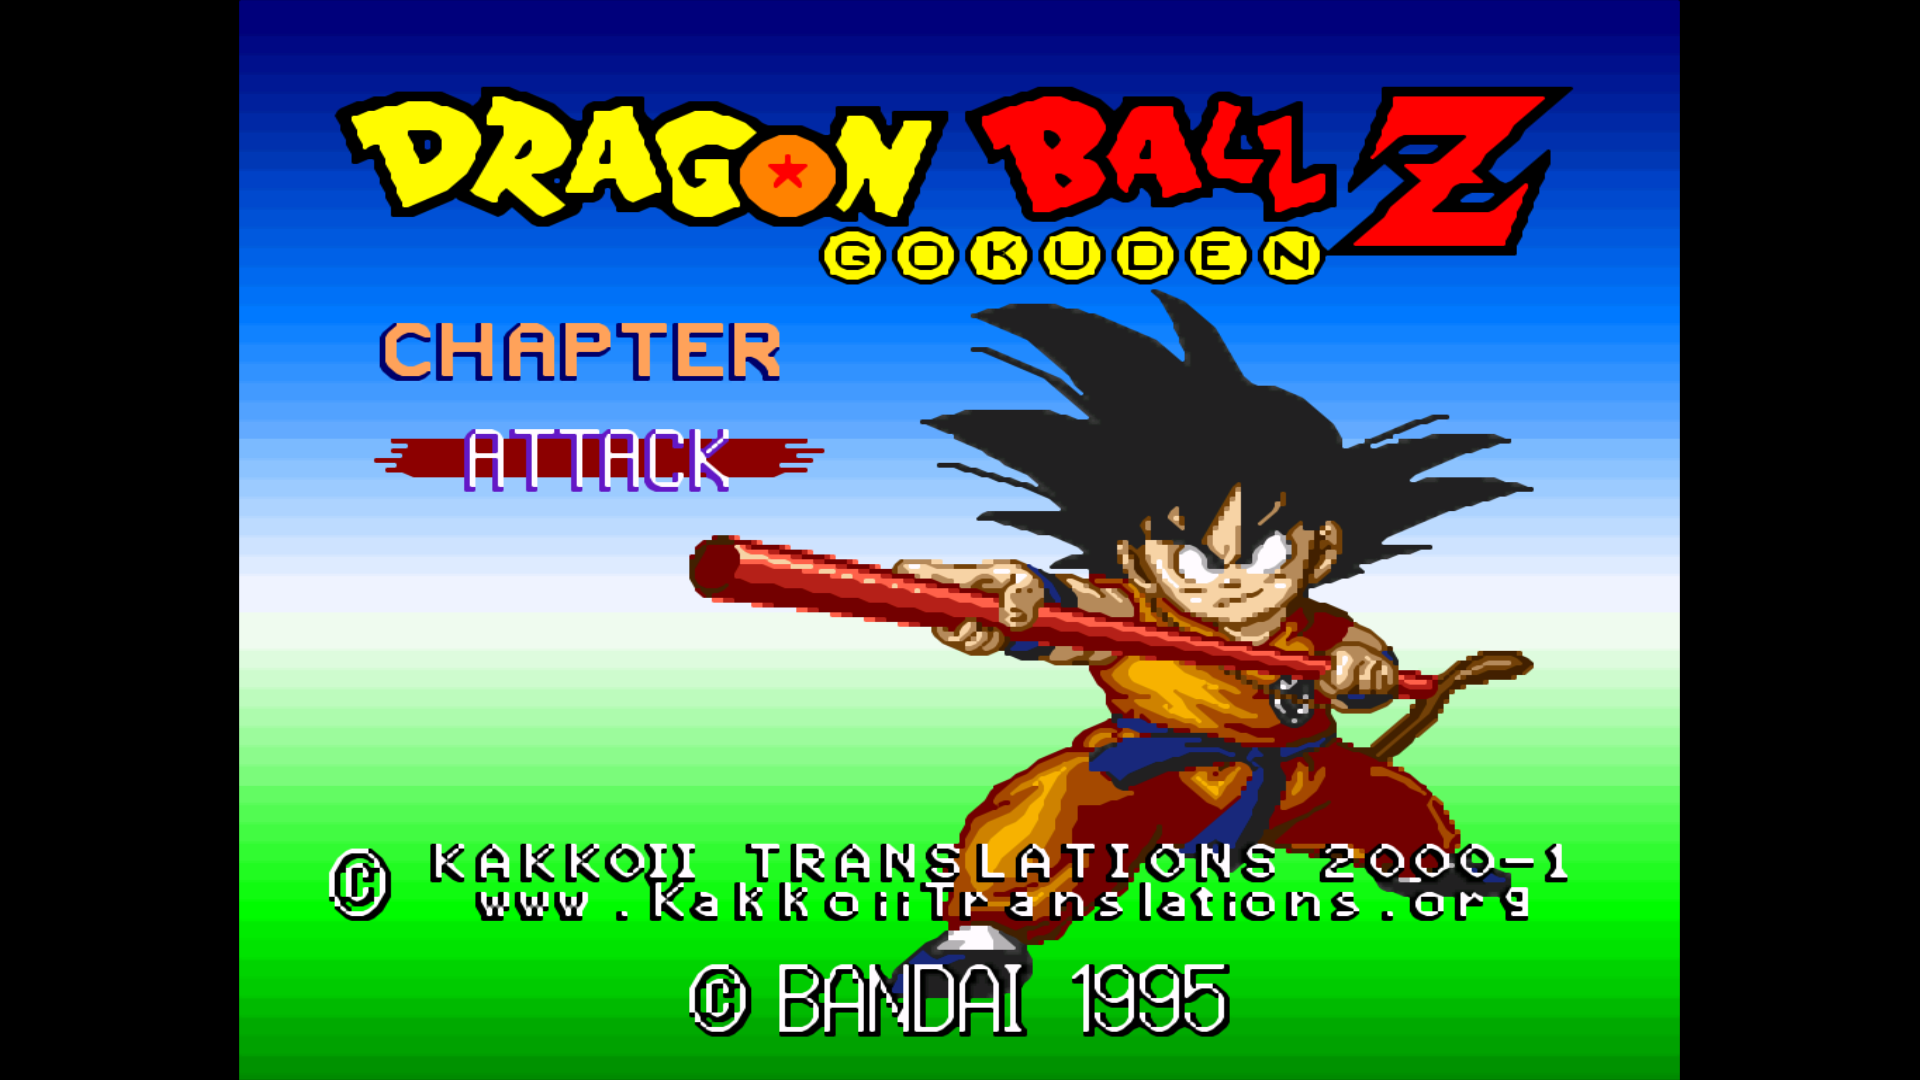 Dragon Ball Z - Super Gokuu Den - Totsugeki Hen (Japan) [En by Kakkoii v0.313] (~Dragon Ball Z - The Legend of Goku 1) (Incomplete)